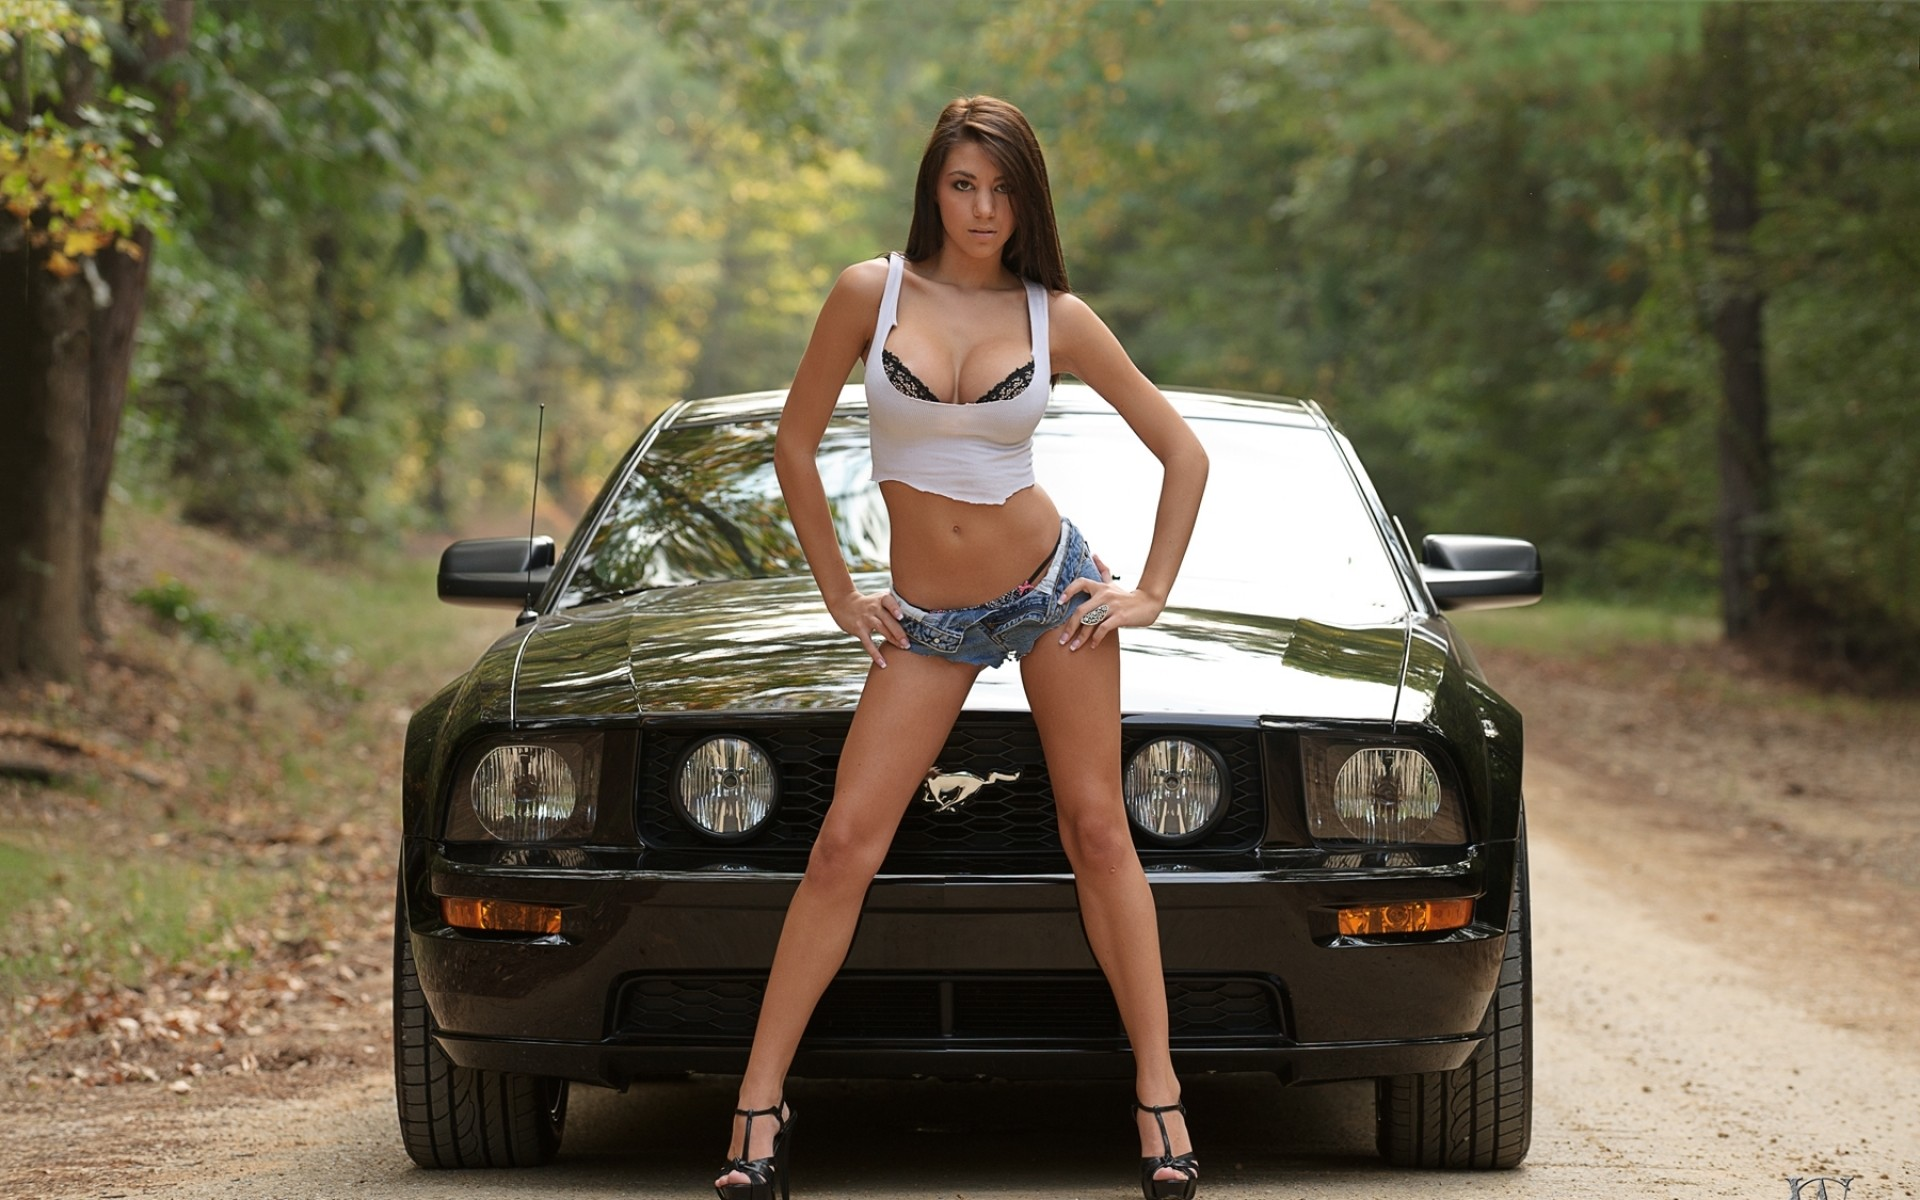 Women trees cars cleavage high heels ford mustang denim shorts wallpaper |  | 31928 | WallpaperUP